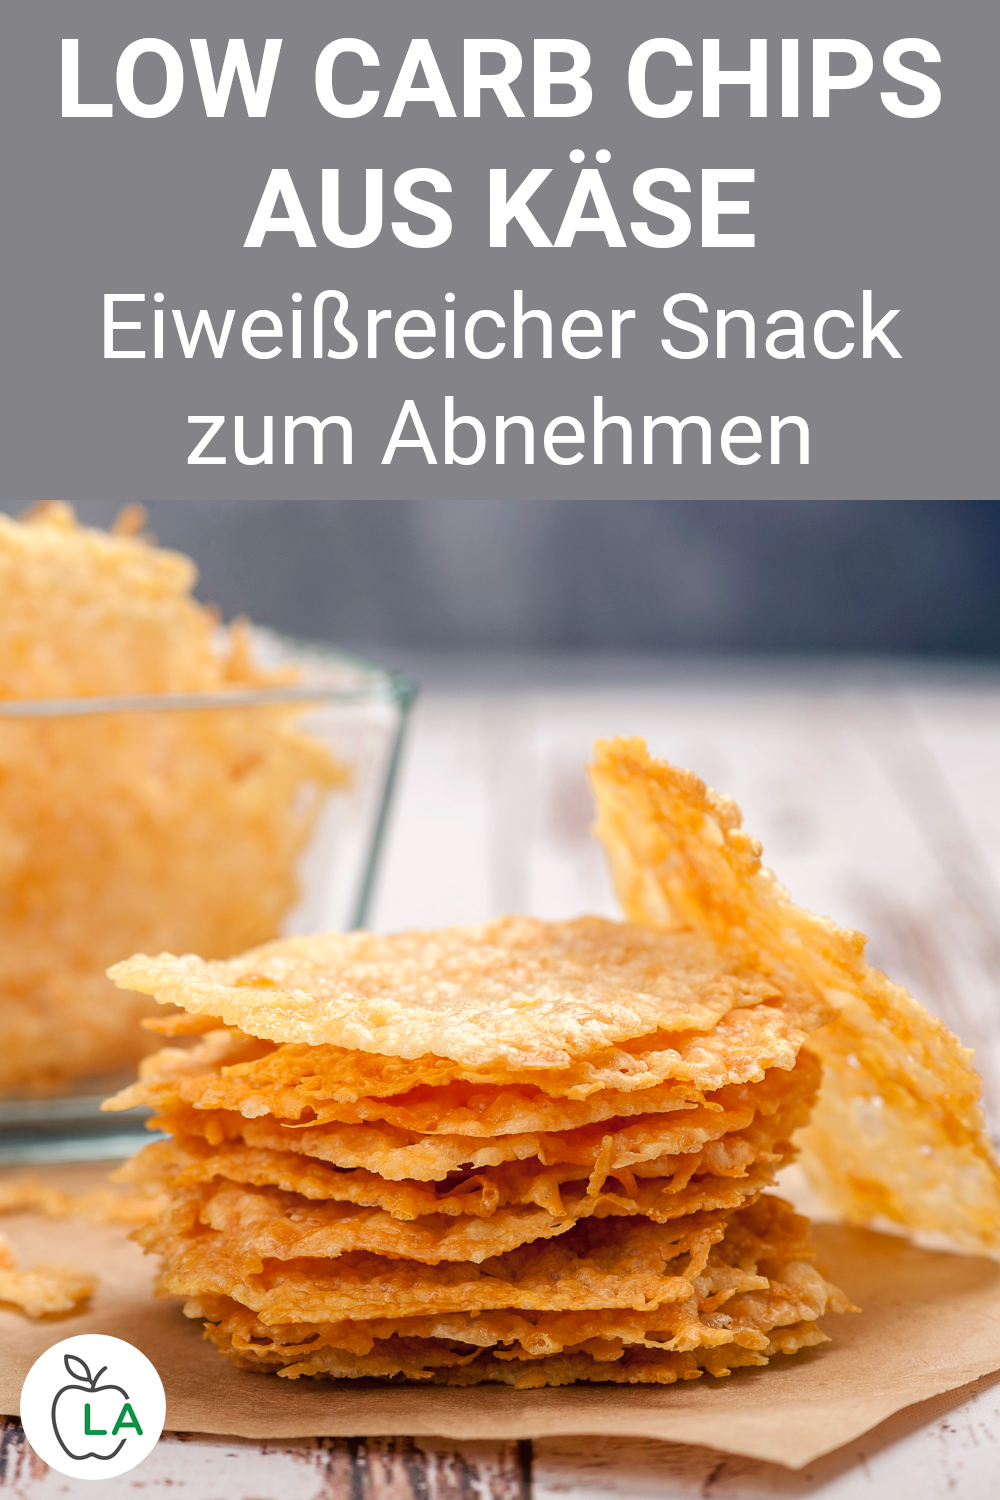 Low Carb Käse Chips - Snack ohne Kohlenhydrate